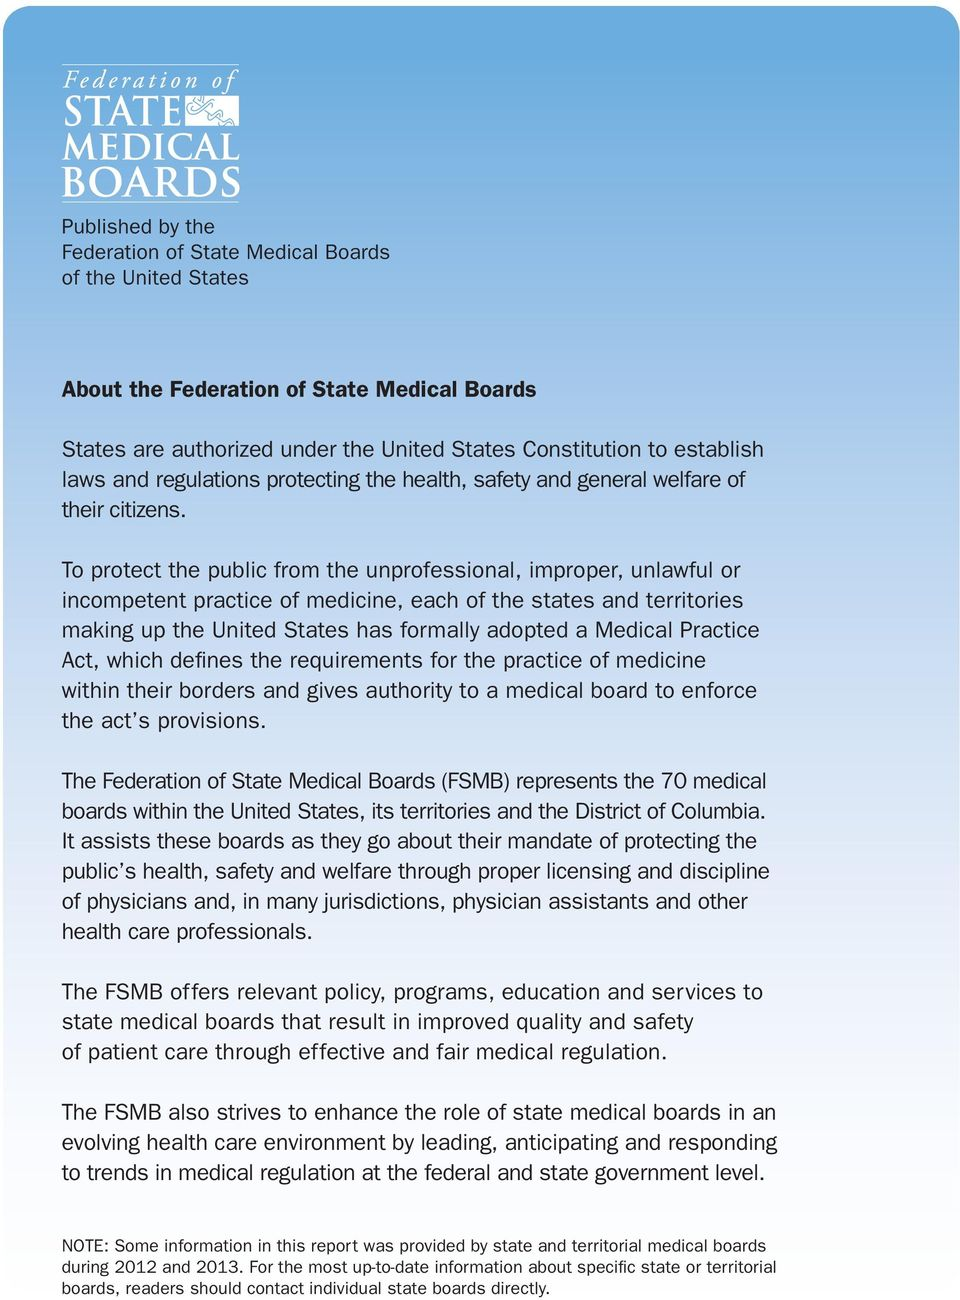 To protect the public from the unprofessional, improper, unlawful or incompetent practice of medicine, each of the states and territories making up the United States has formally adopted a Medical